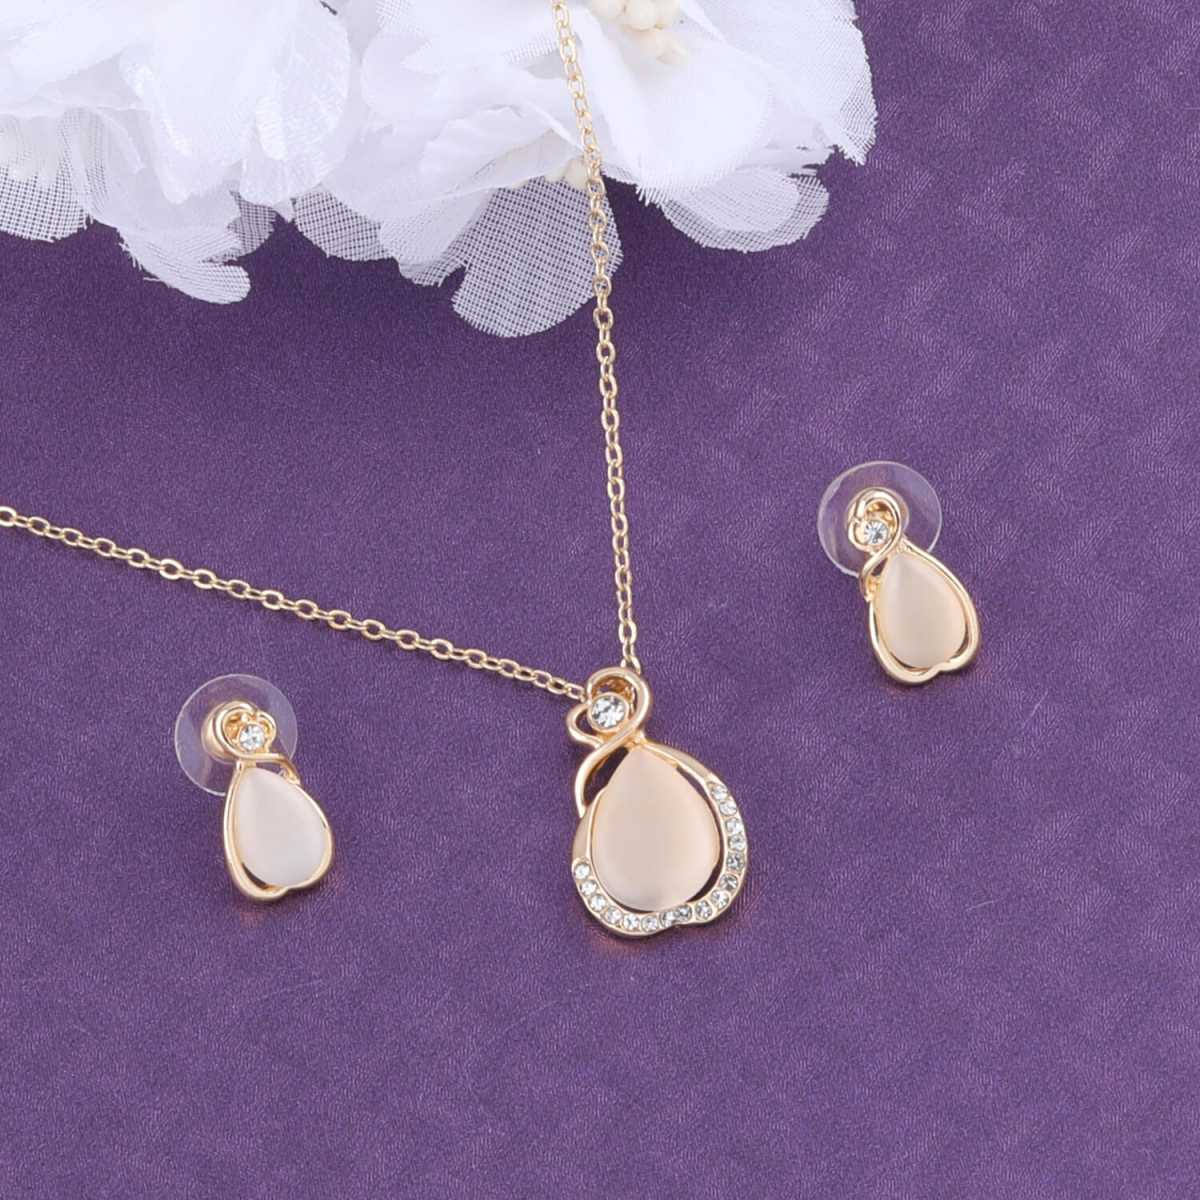 SILVER SHINE Delicate Fancy look   Pendant Set For Women Girl